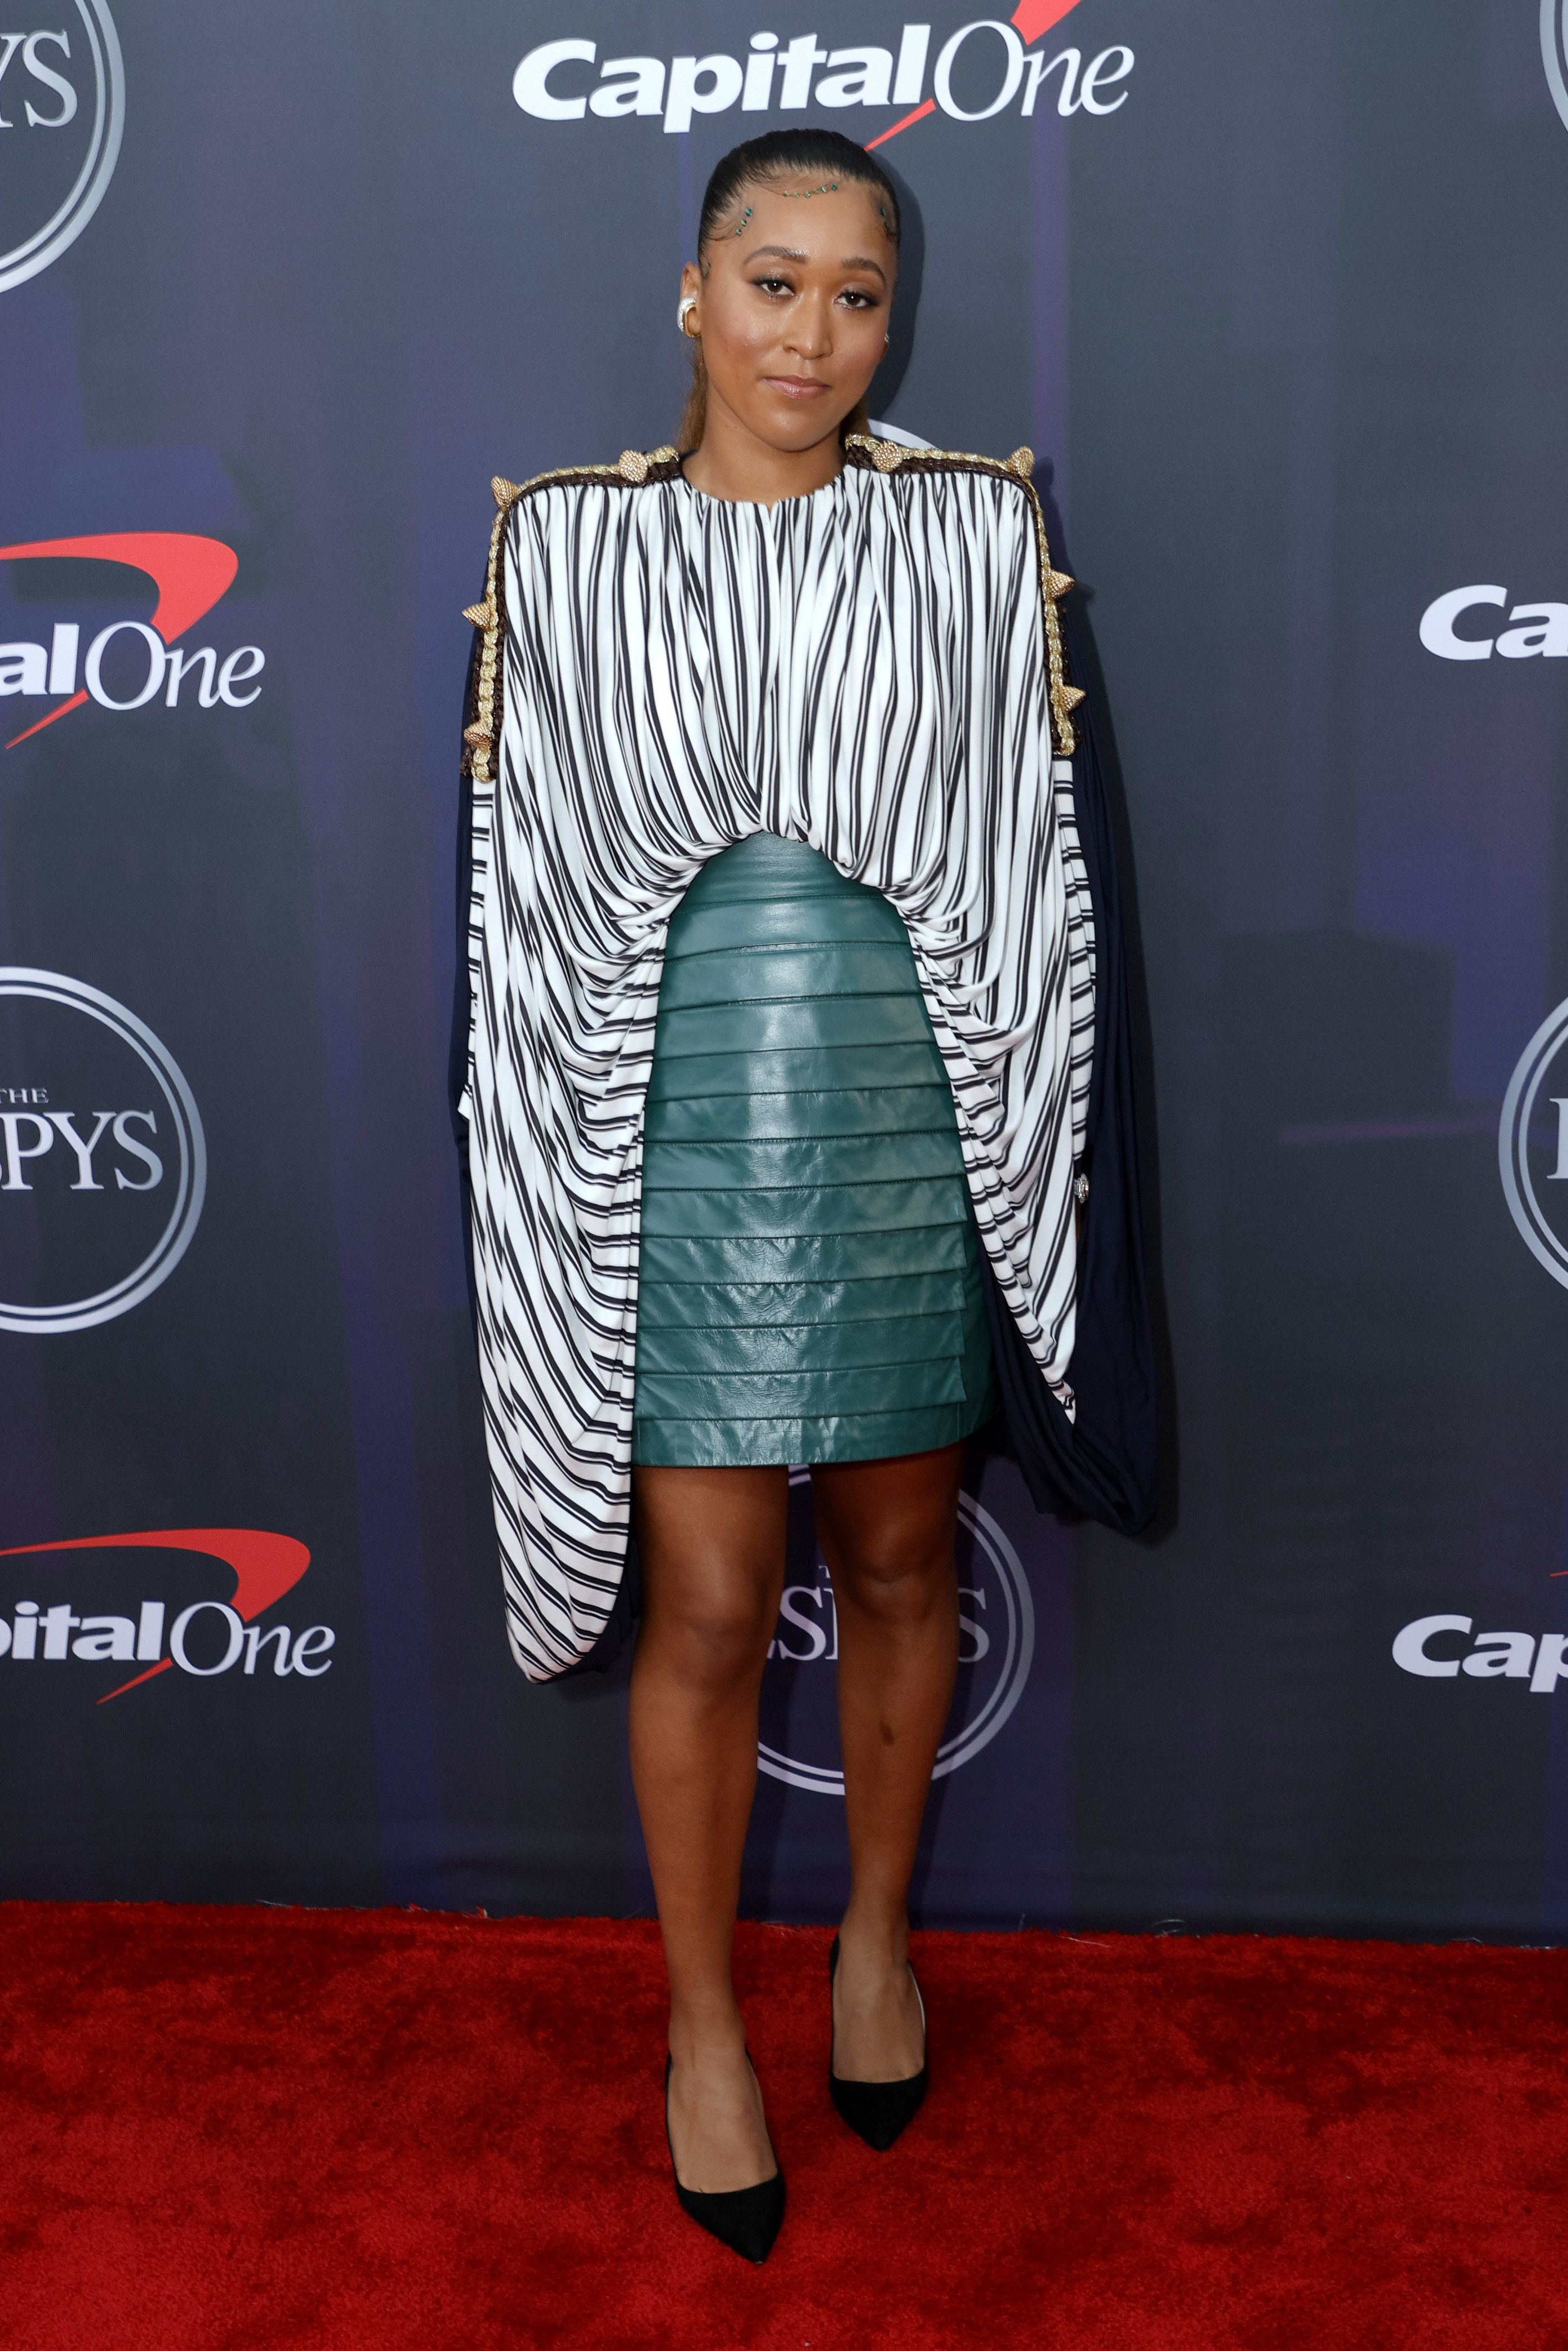 Naomi wore a striped blouse with oversized arms and a leather skirt